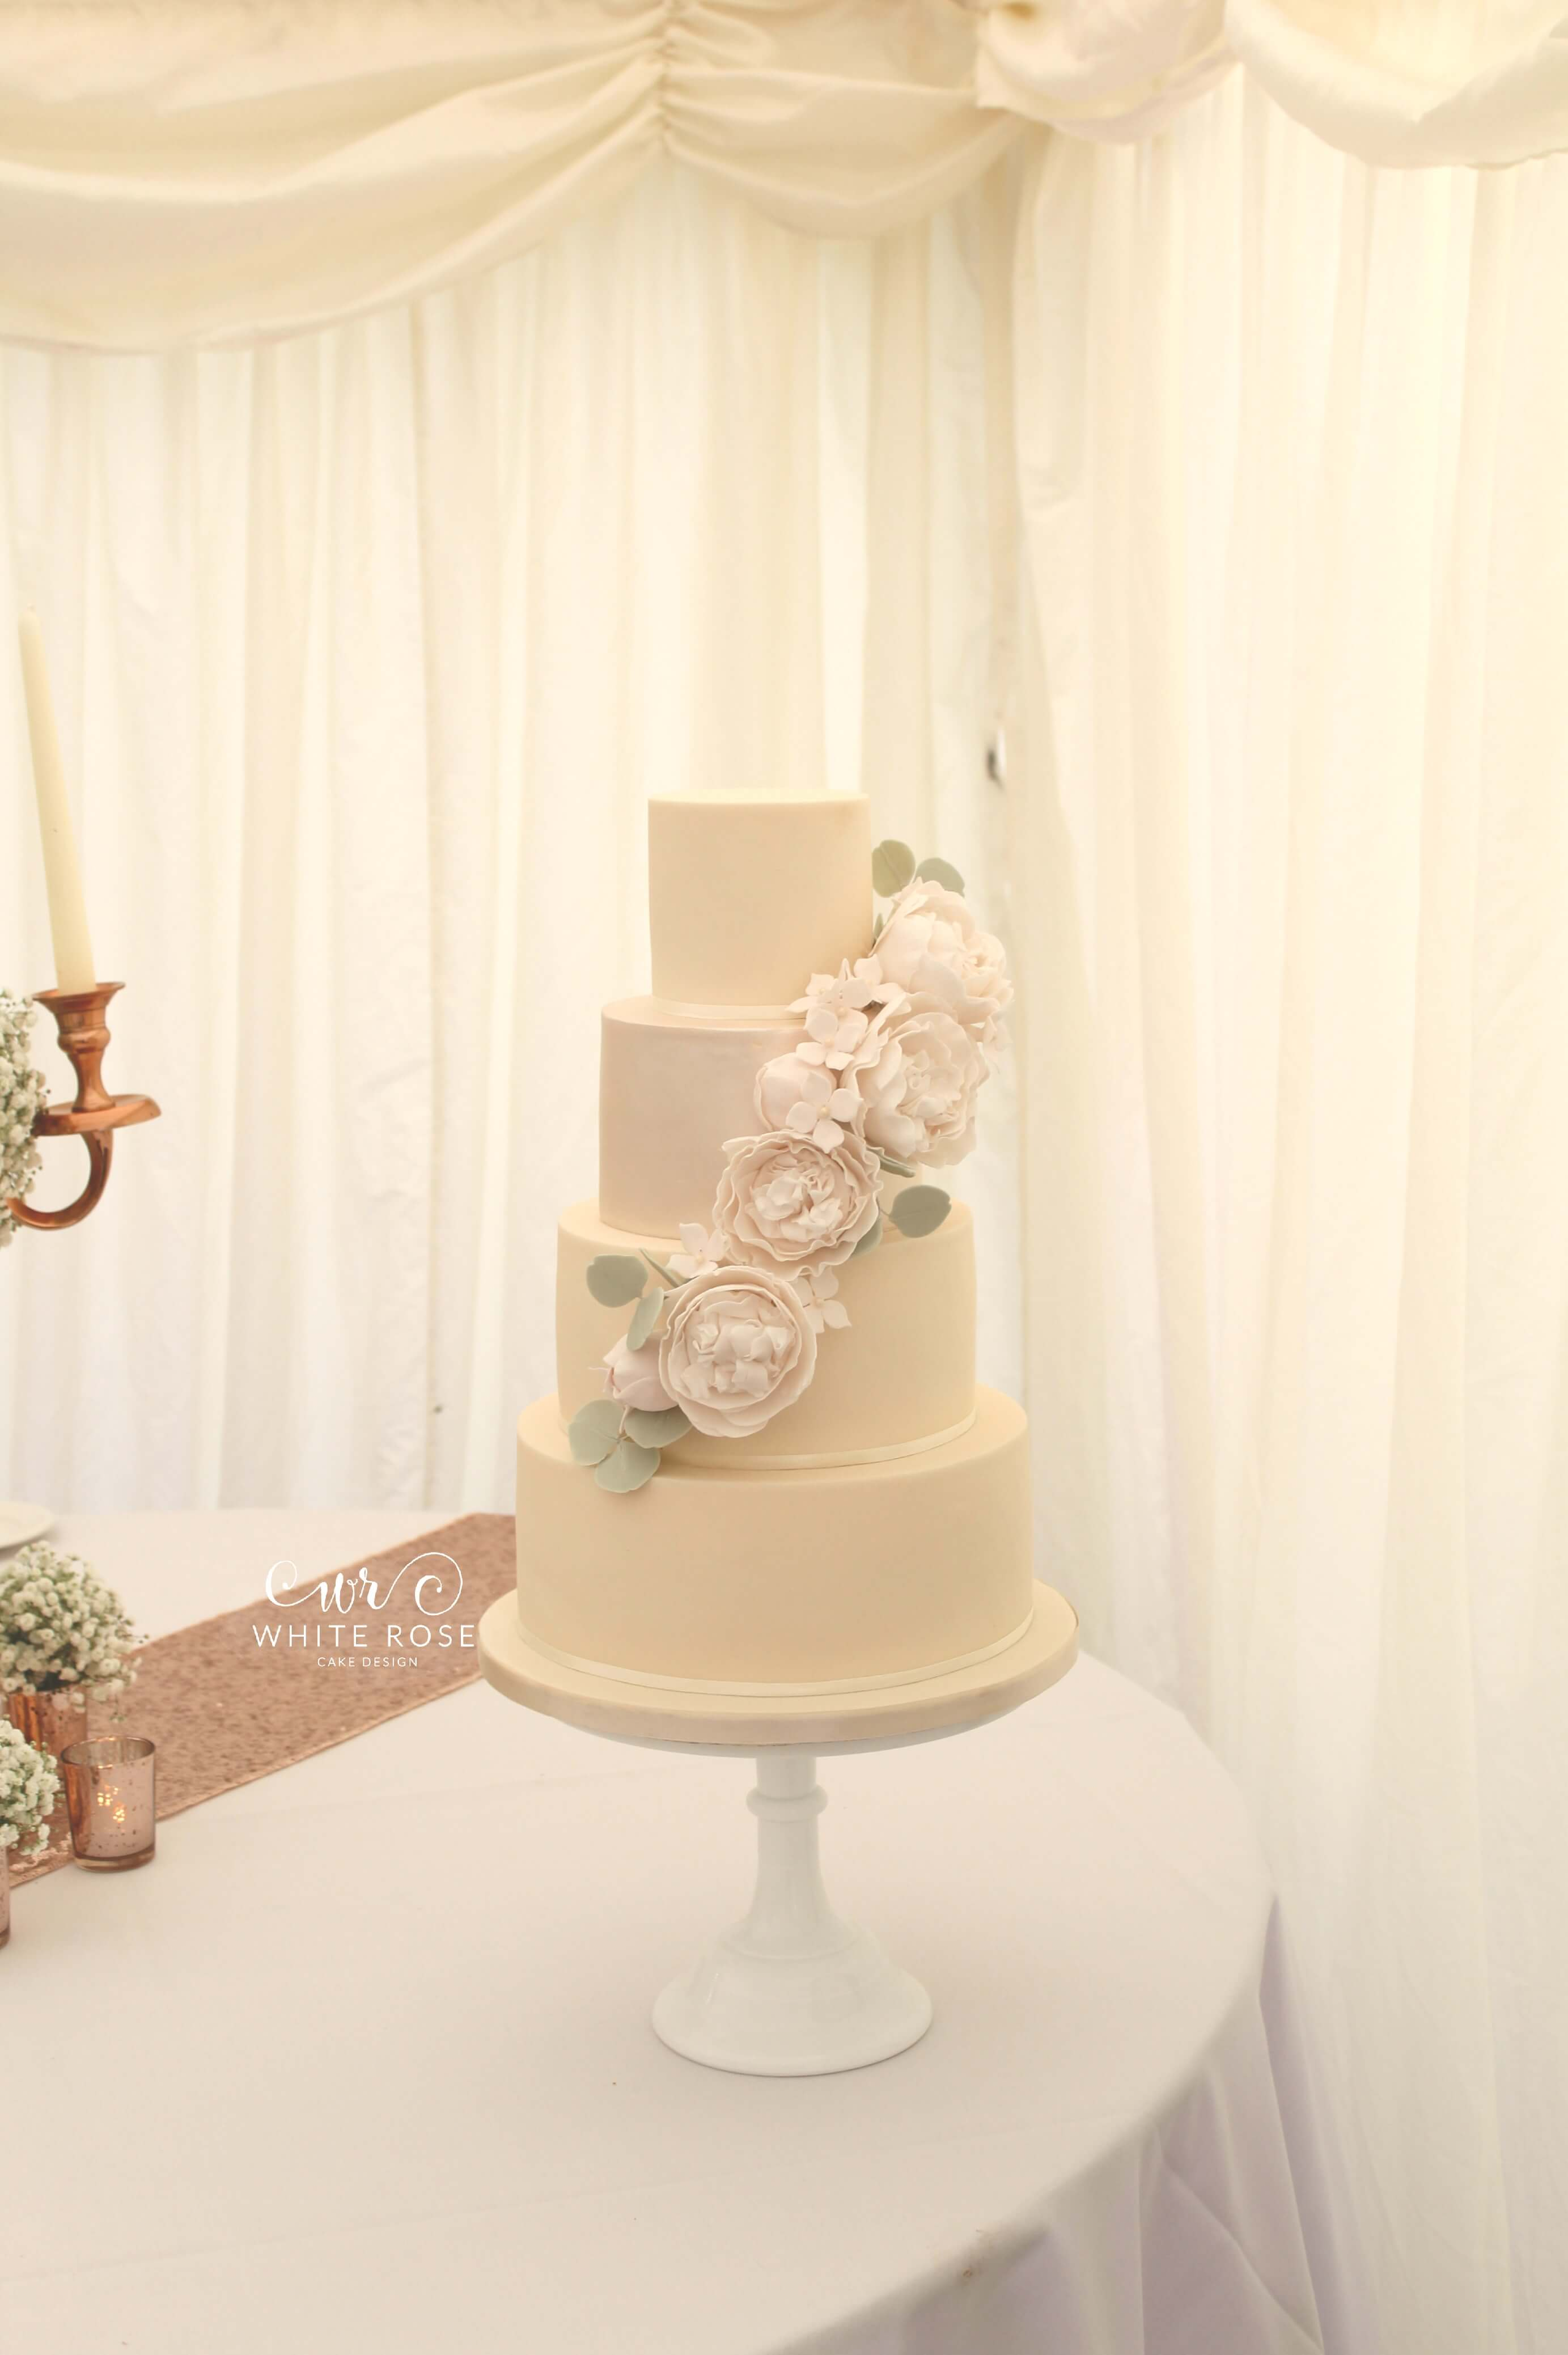 Four Tier White on White Wedding Cake with Lustre and Peonies by White Rose Cake Design in West Yorkshire